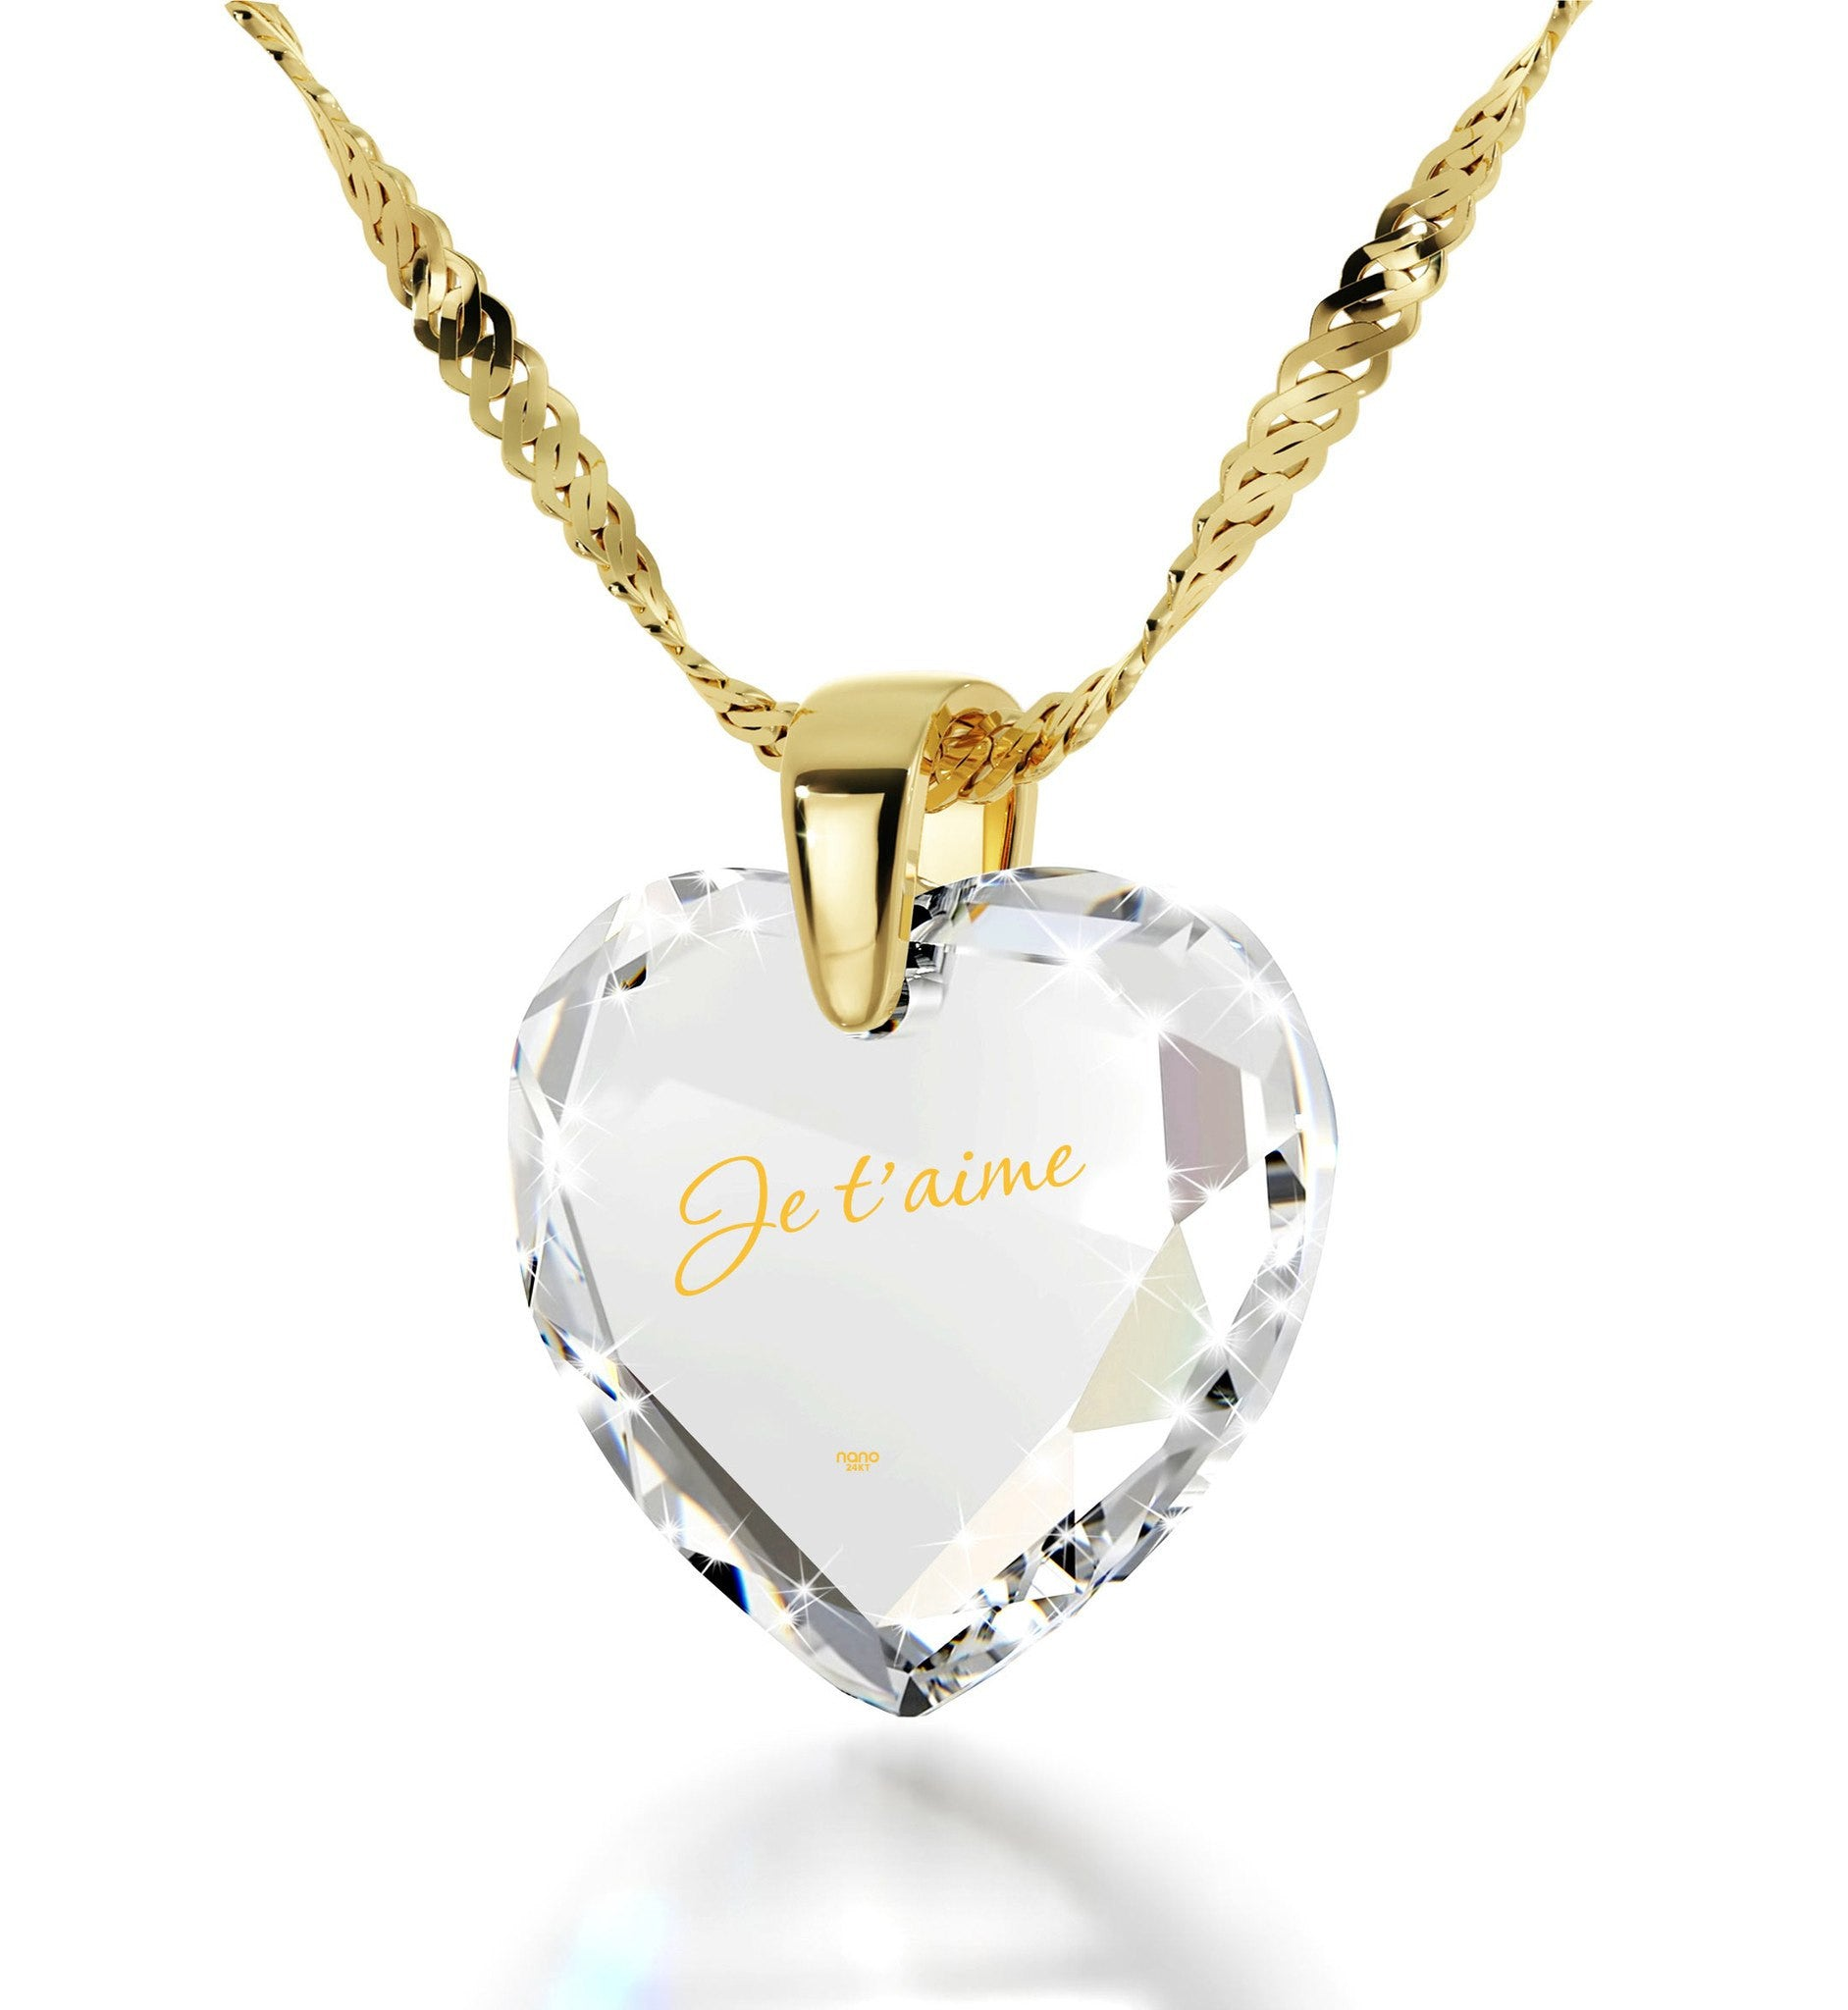 "Top Womens Gifts,""I Love You"" in French, CZ Jewelry, Romantic Ideas for Valentines Day, Nano"